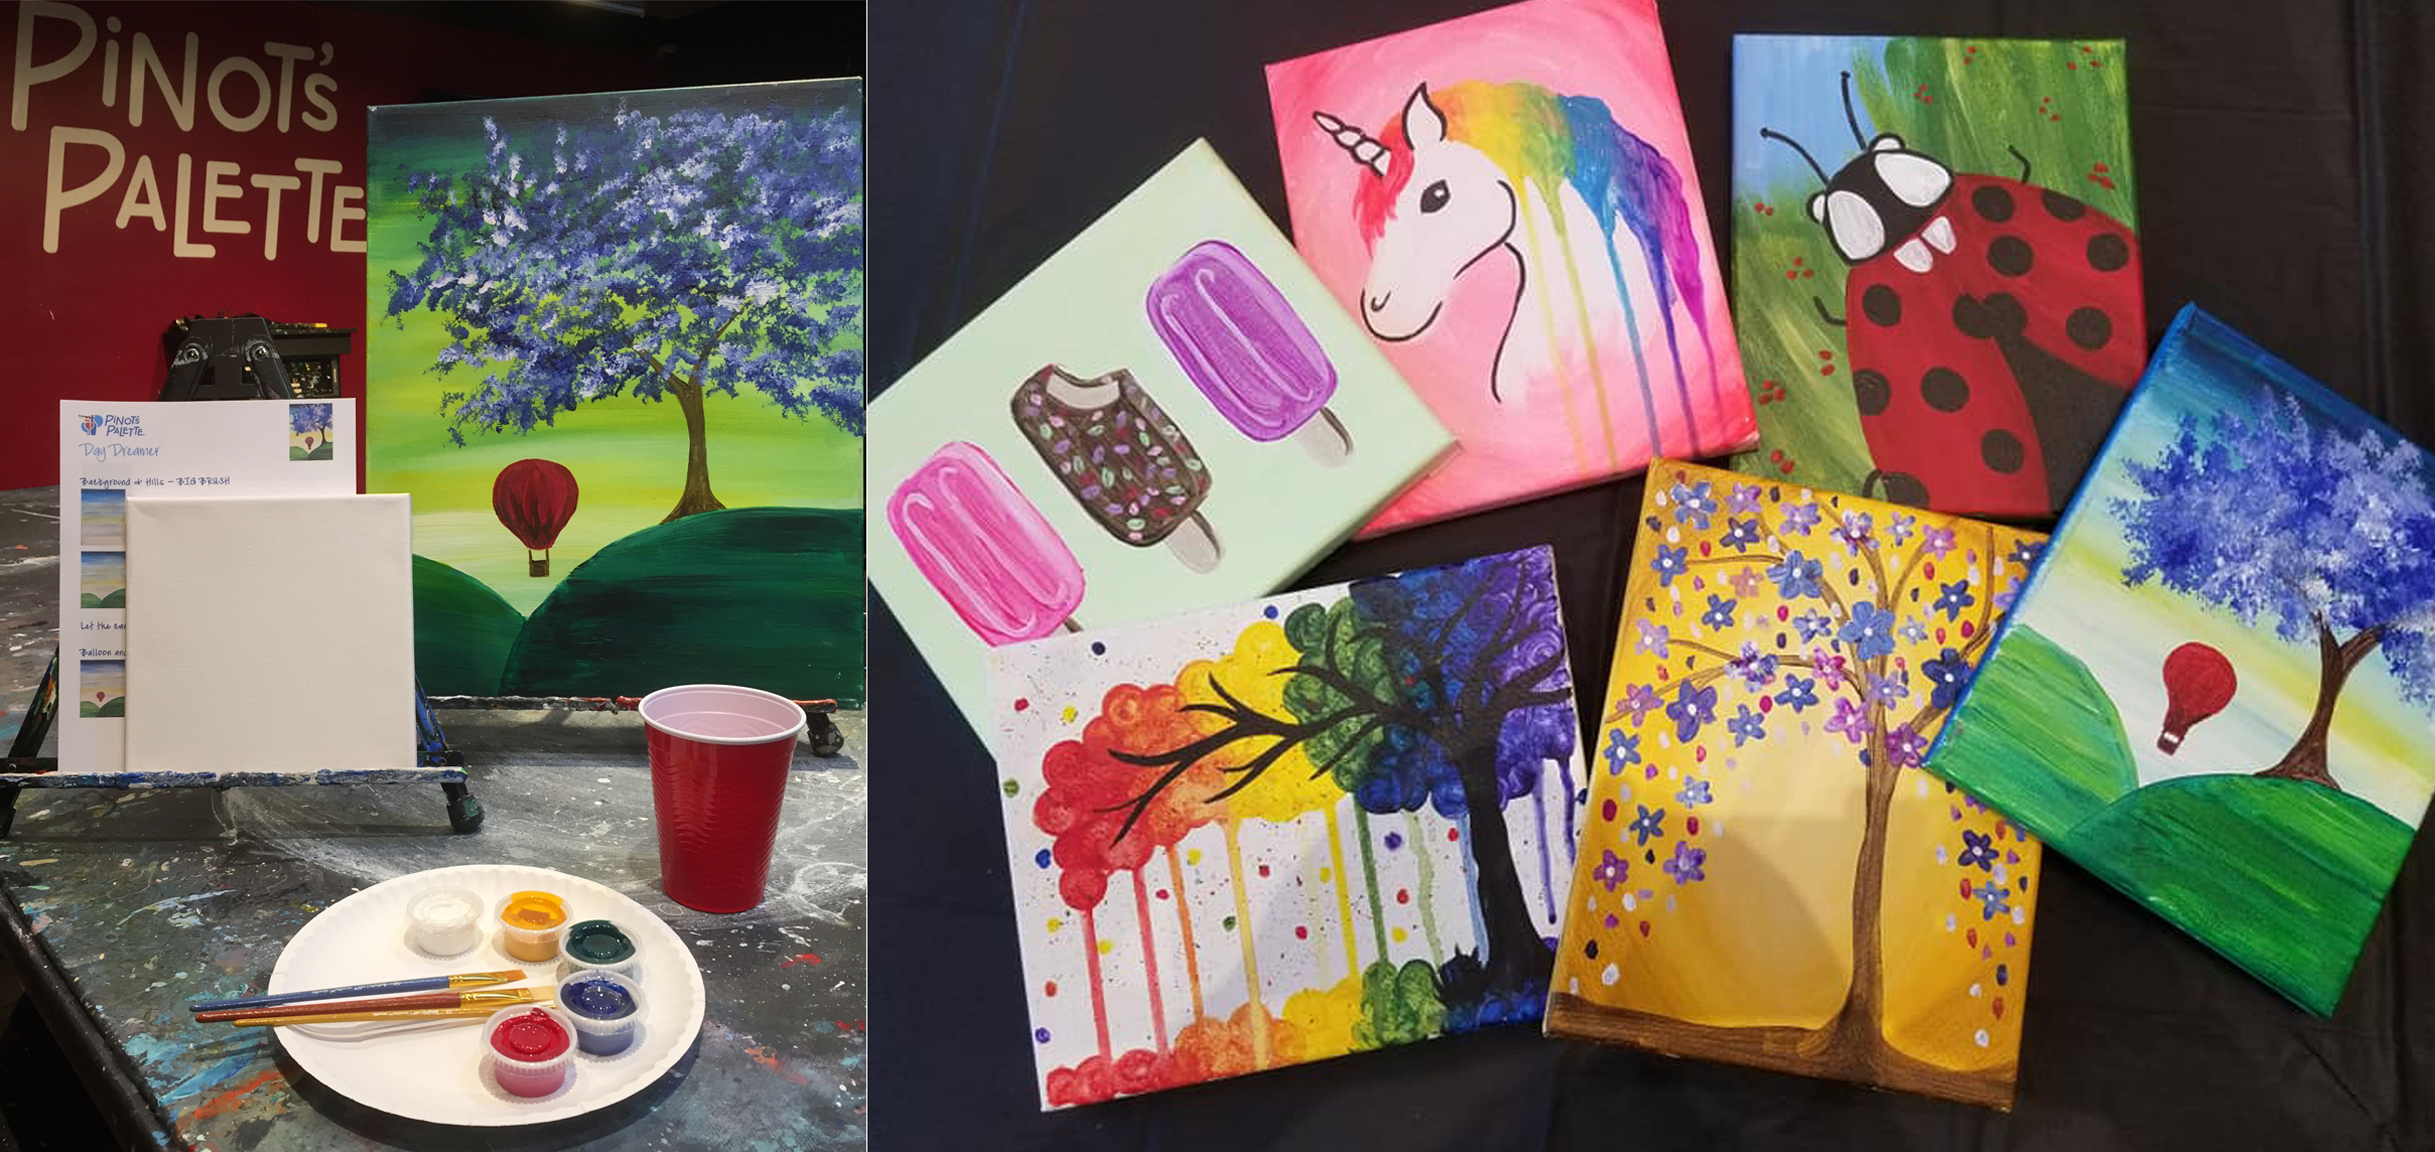 Pinot's Palette Now Offering Take Home Painting Kits